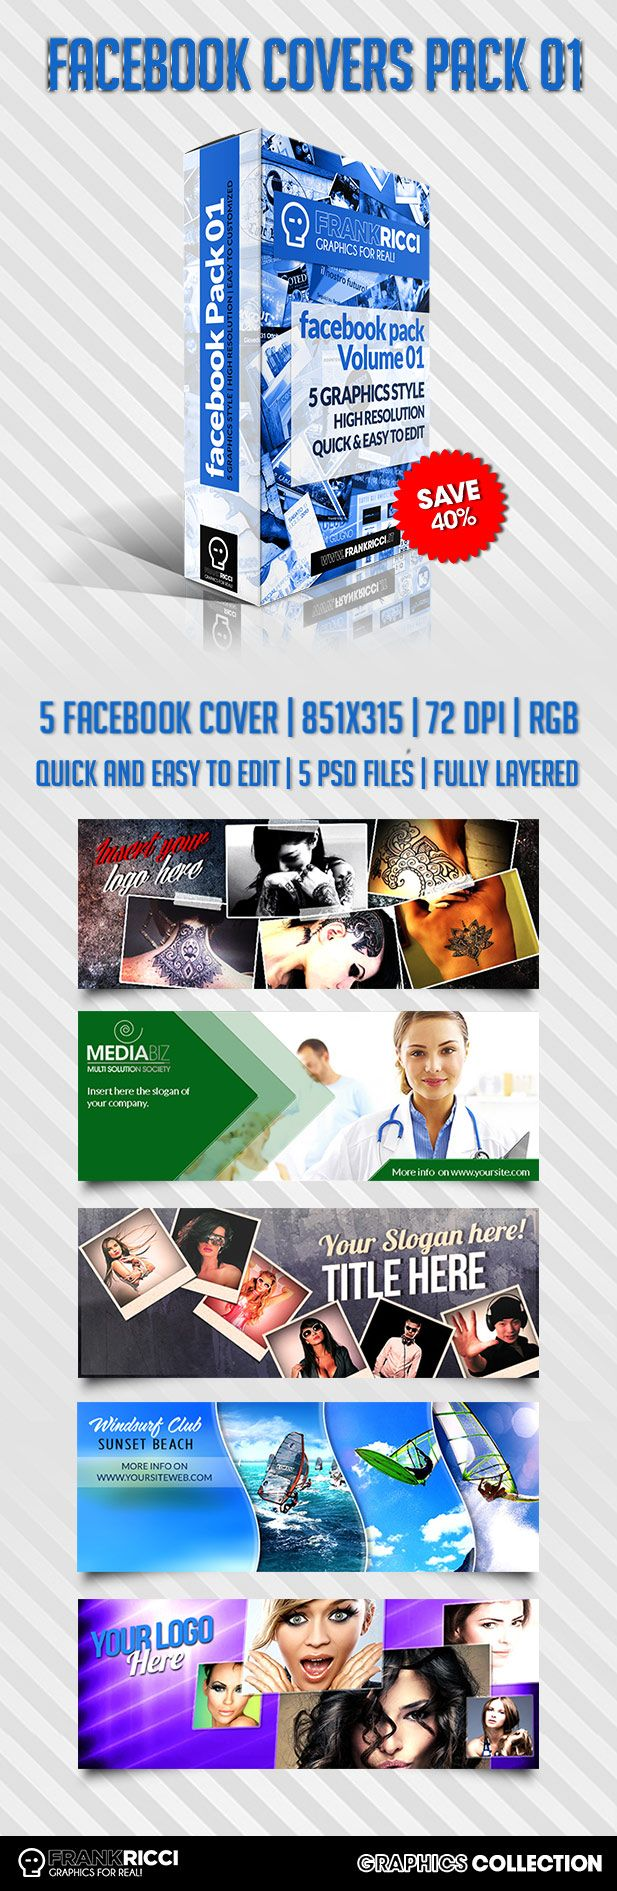 Cover Facebook Pack 01 - Available on http://frankricci.it/facebook-cover-pack-1/